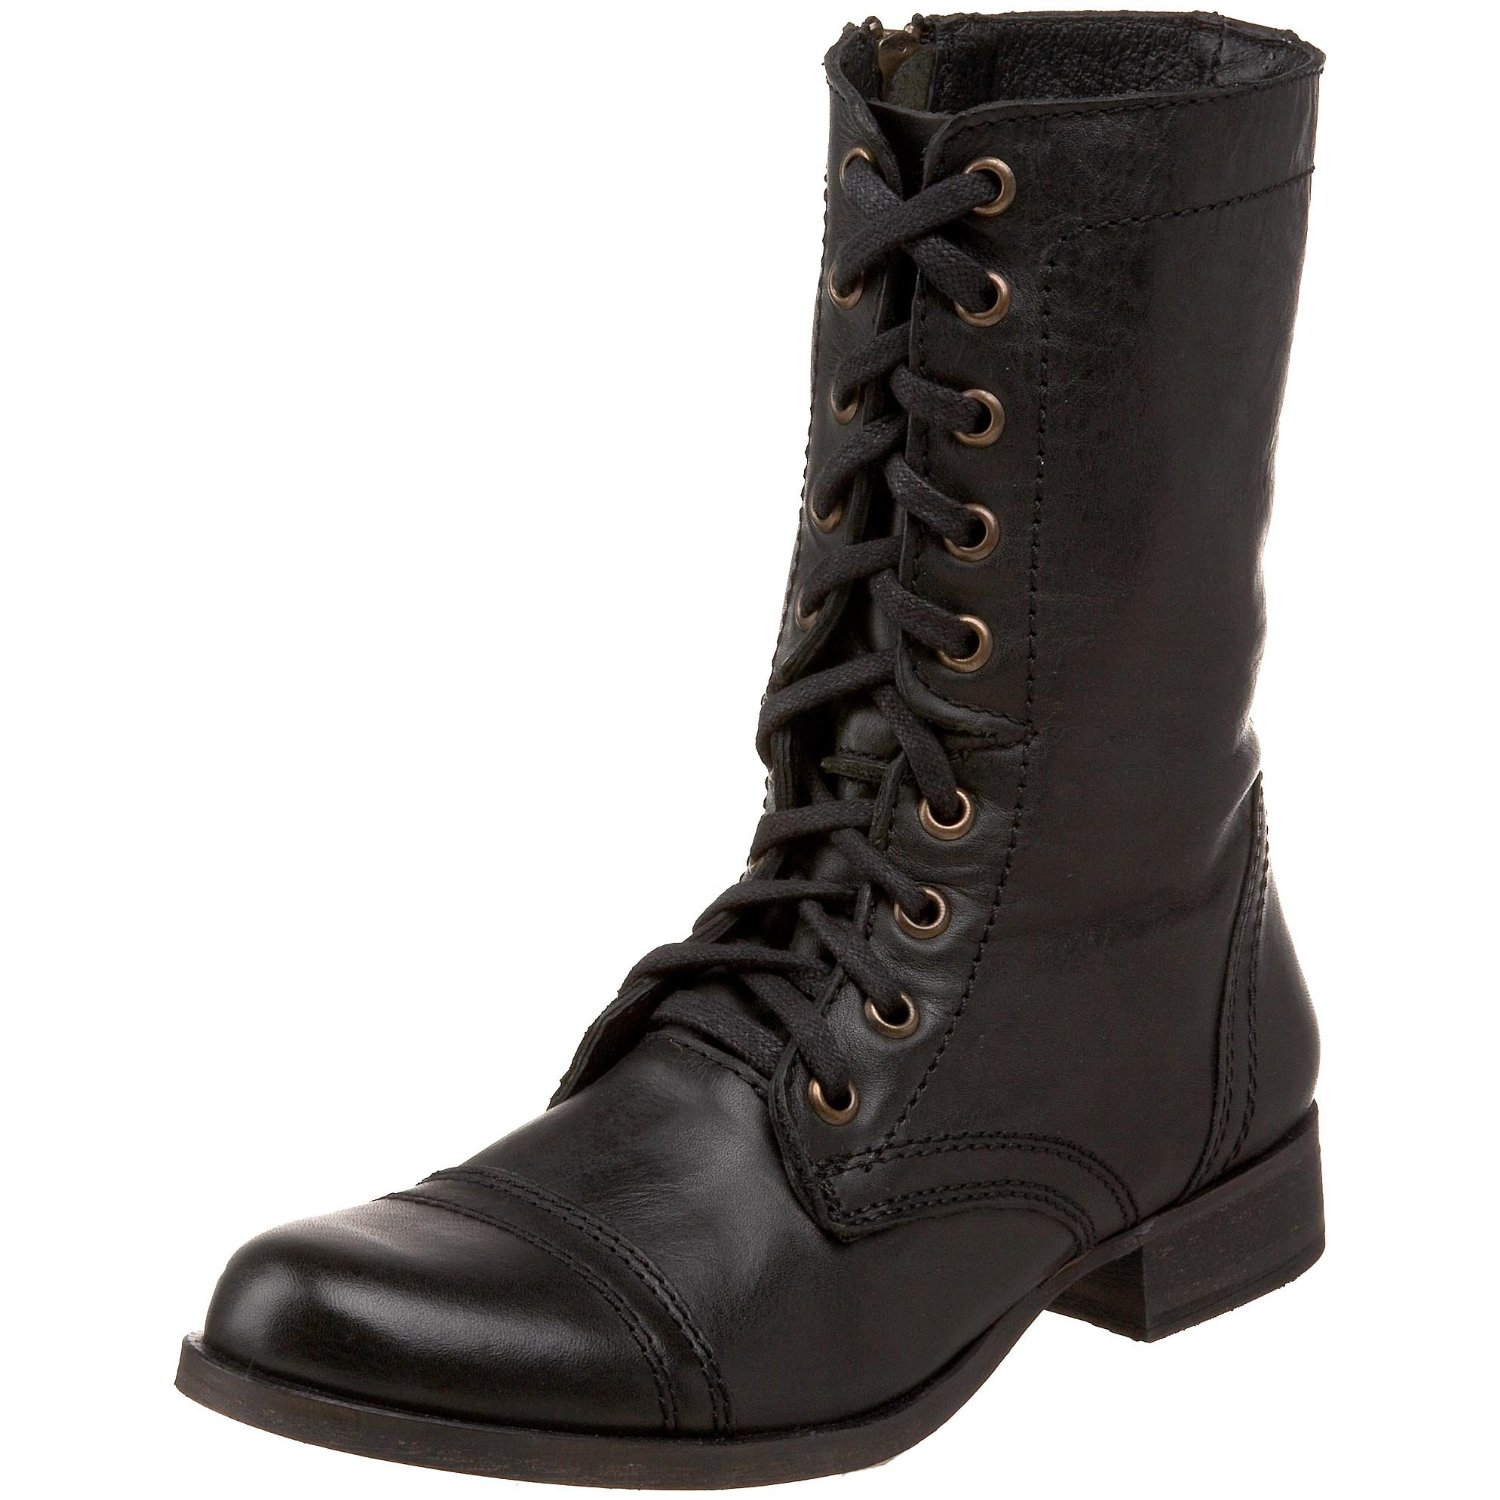 Brilliant New Women39s Fold Over Collar Lace Up Combat Mid Calf Boots Black Sizes